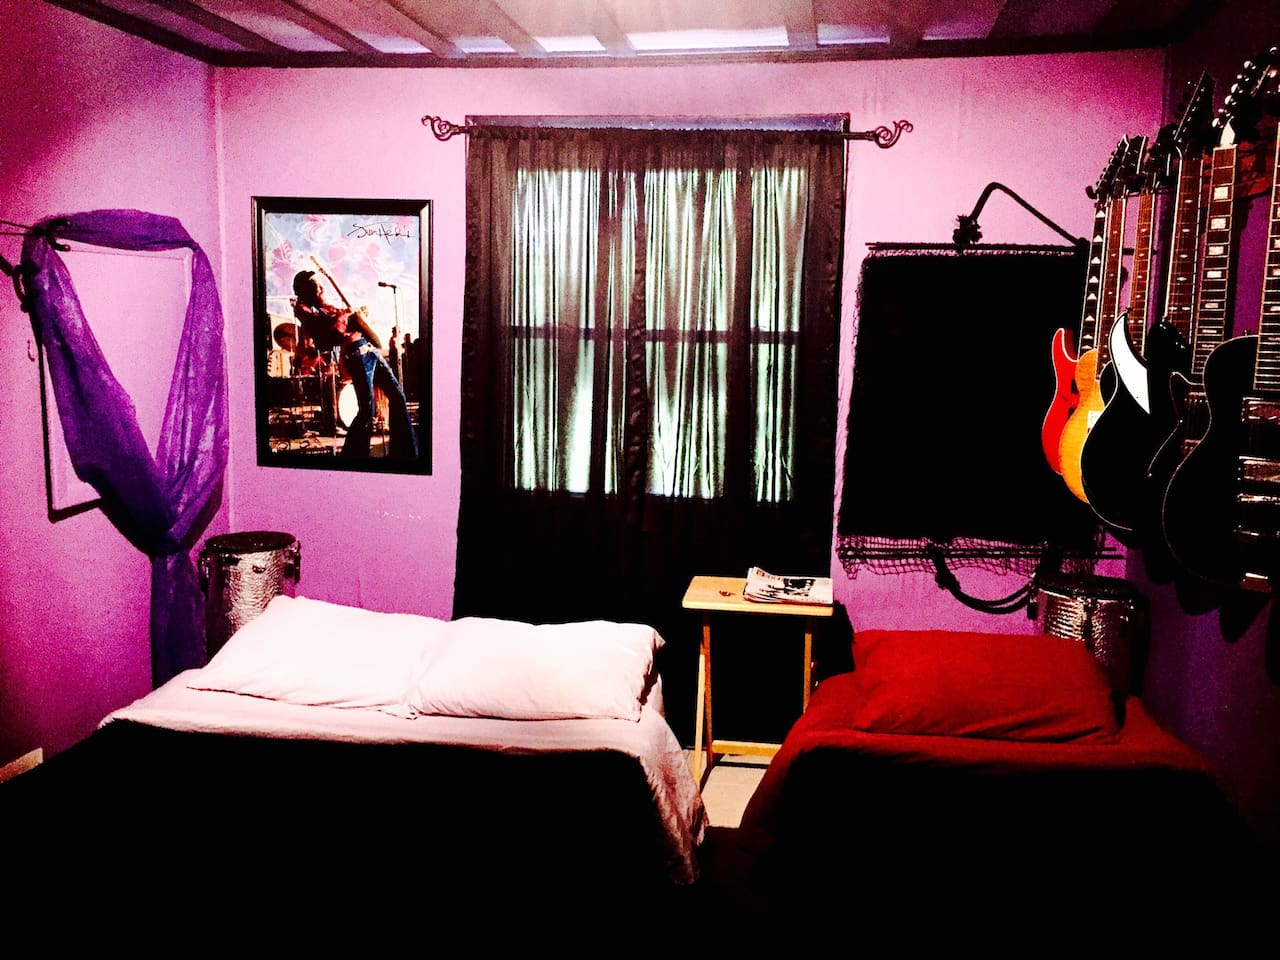 music theme room jimi hendrix new music row houses for music theme room jimi hendrix new music row houses for rent in nashville tennessee united states